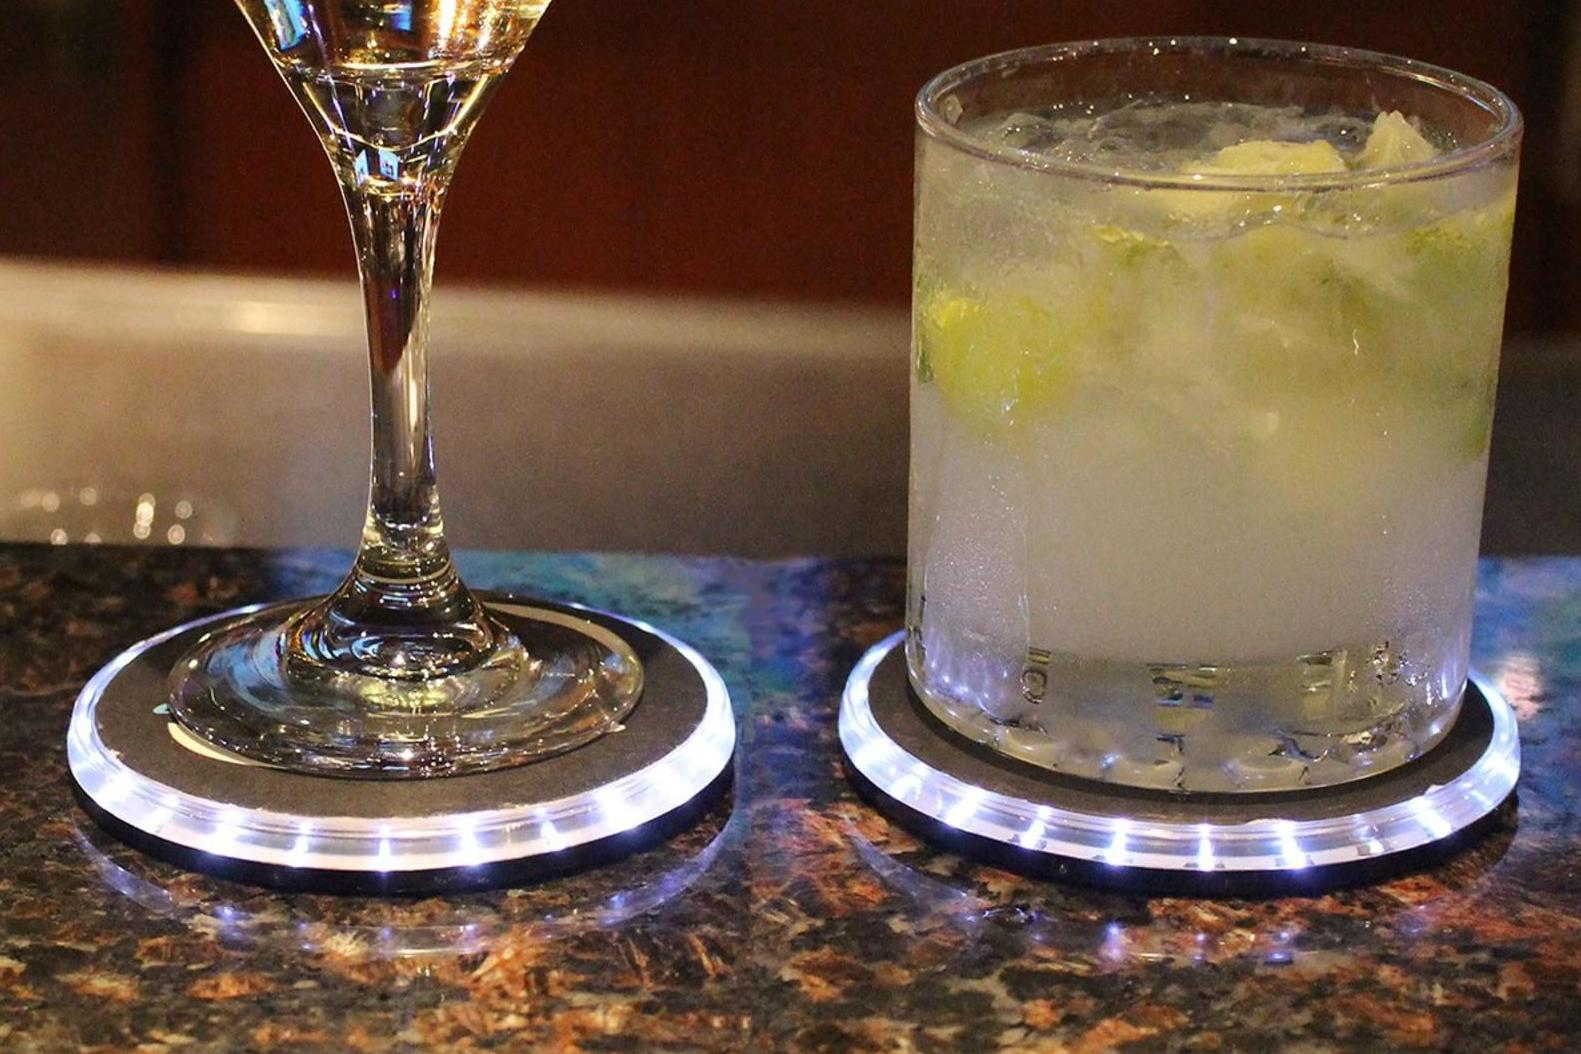 Brio Smart Coaster The Solution To Keeping Your Drink